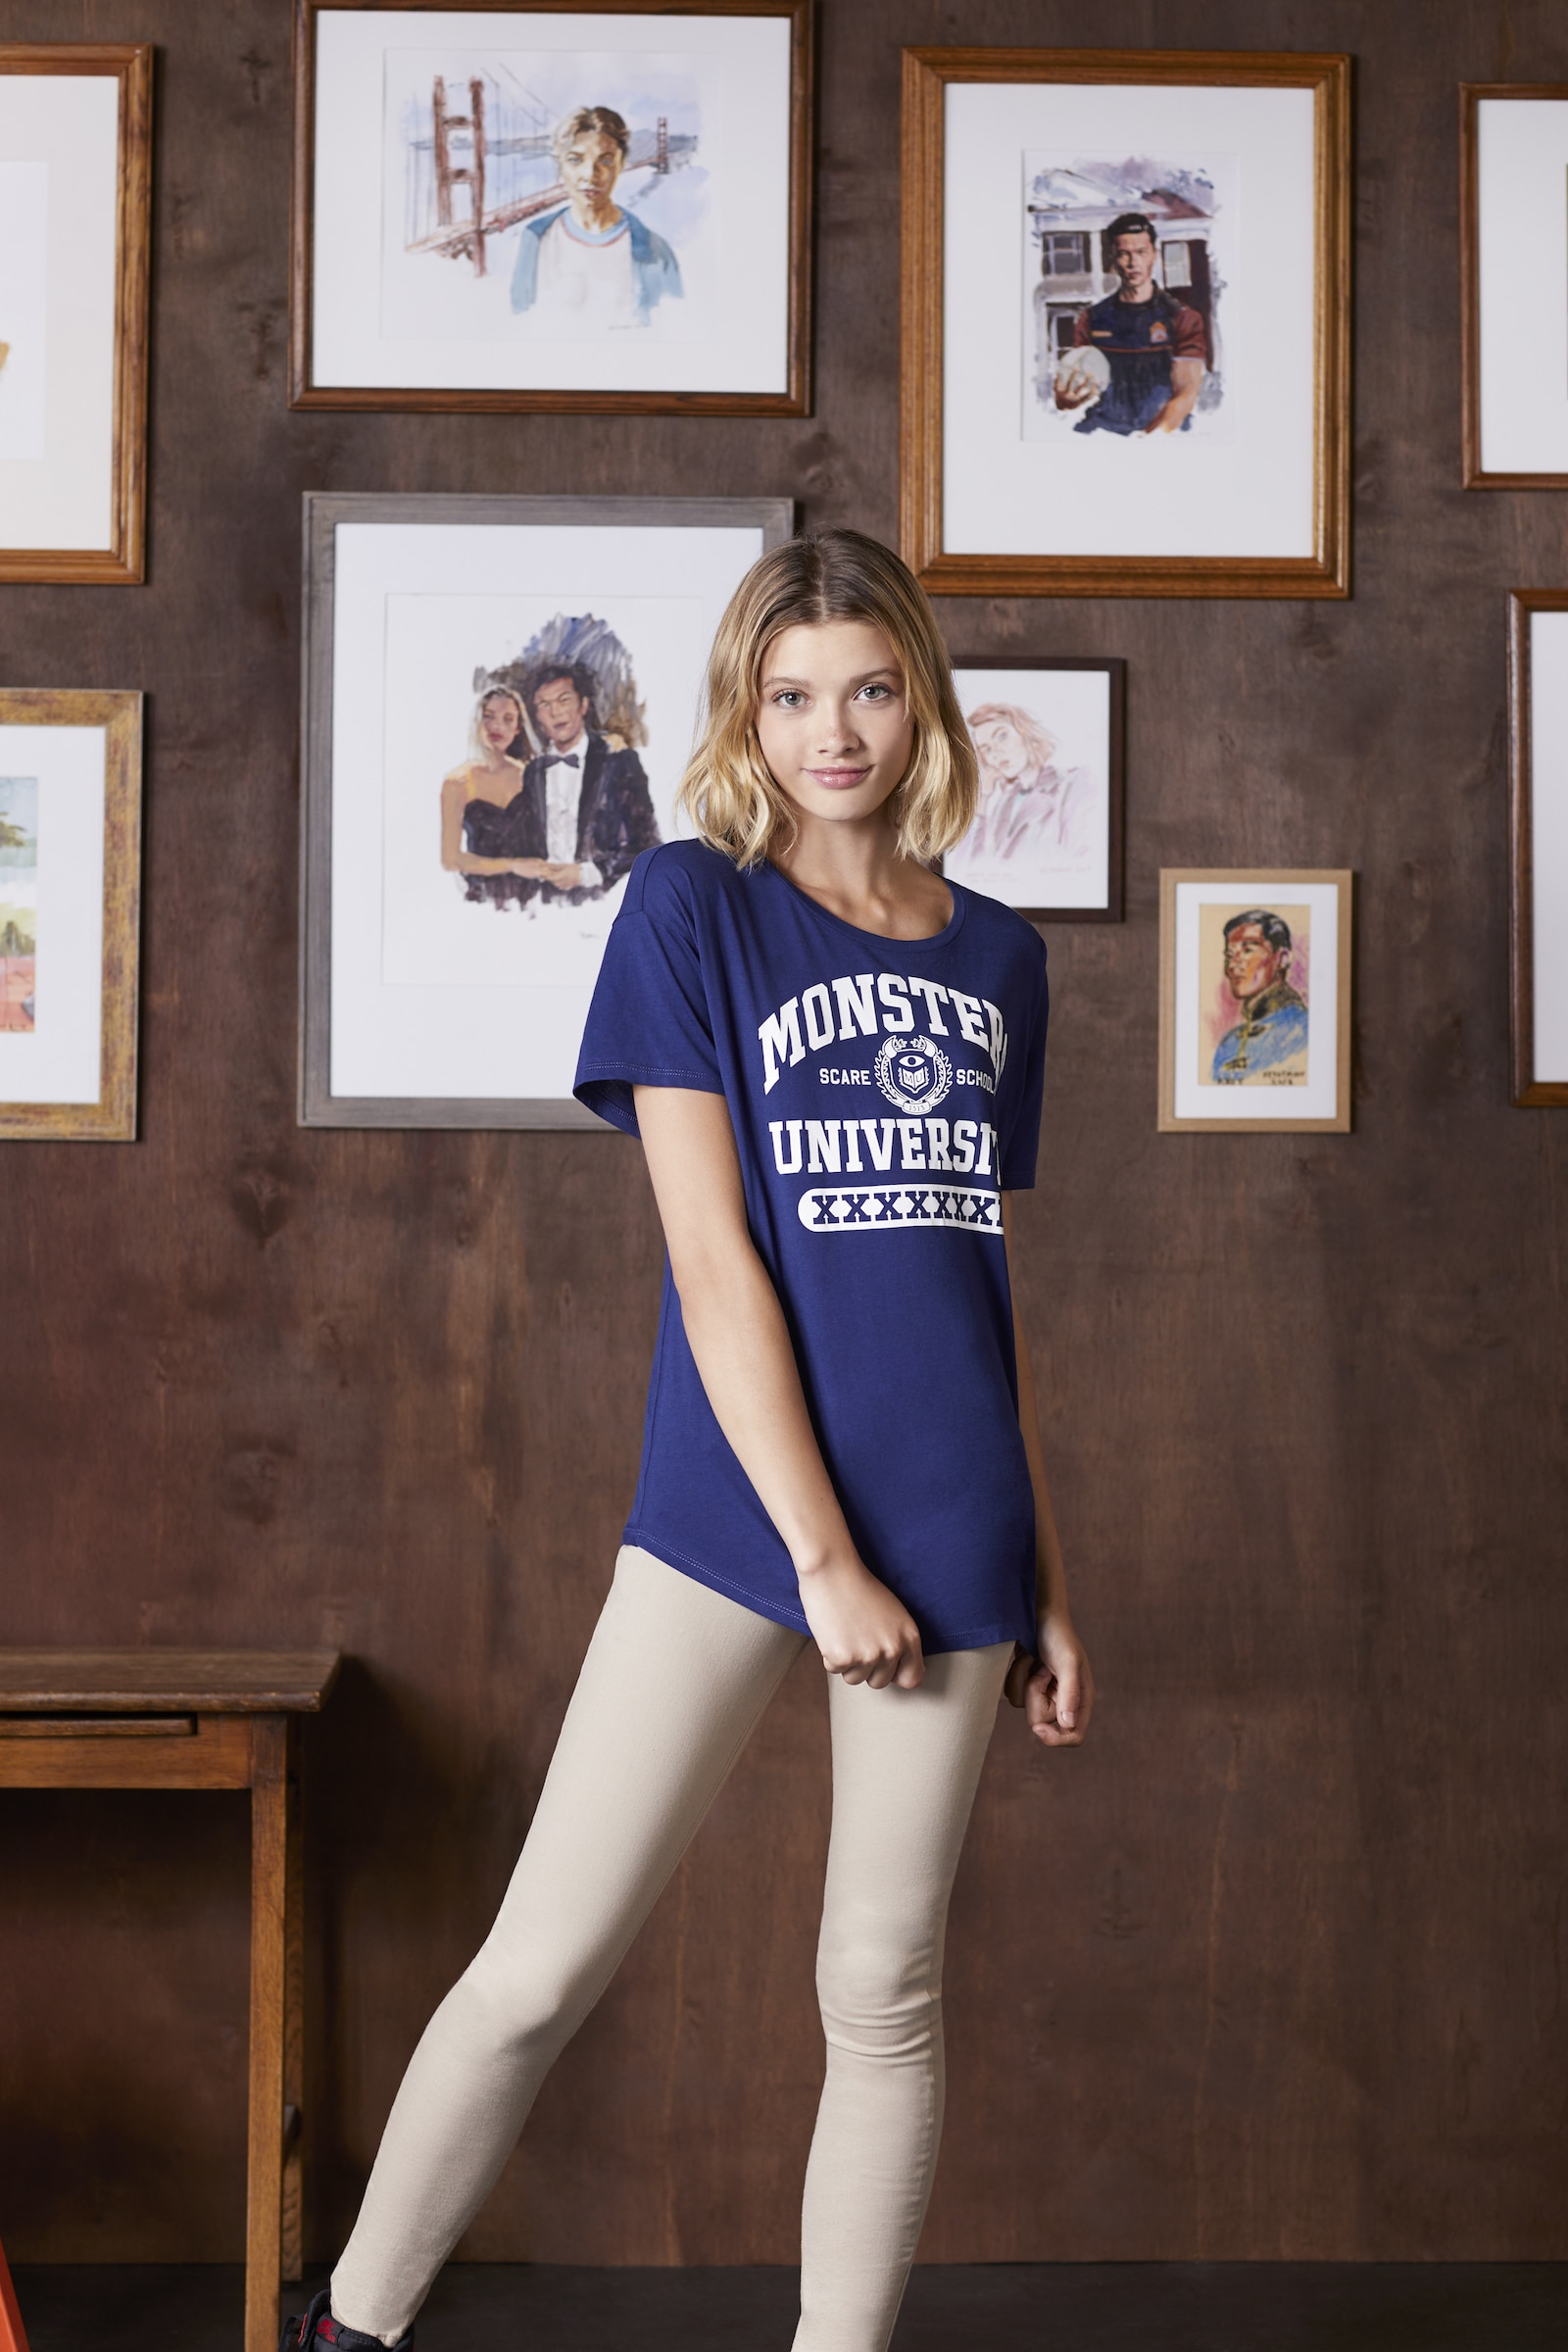 Model wearing clothing from the Monsters University Collection